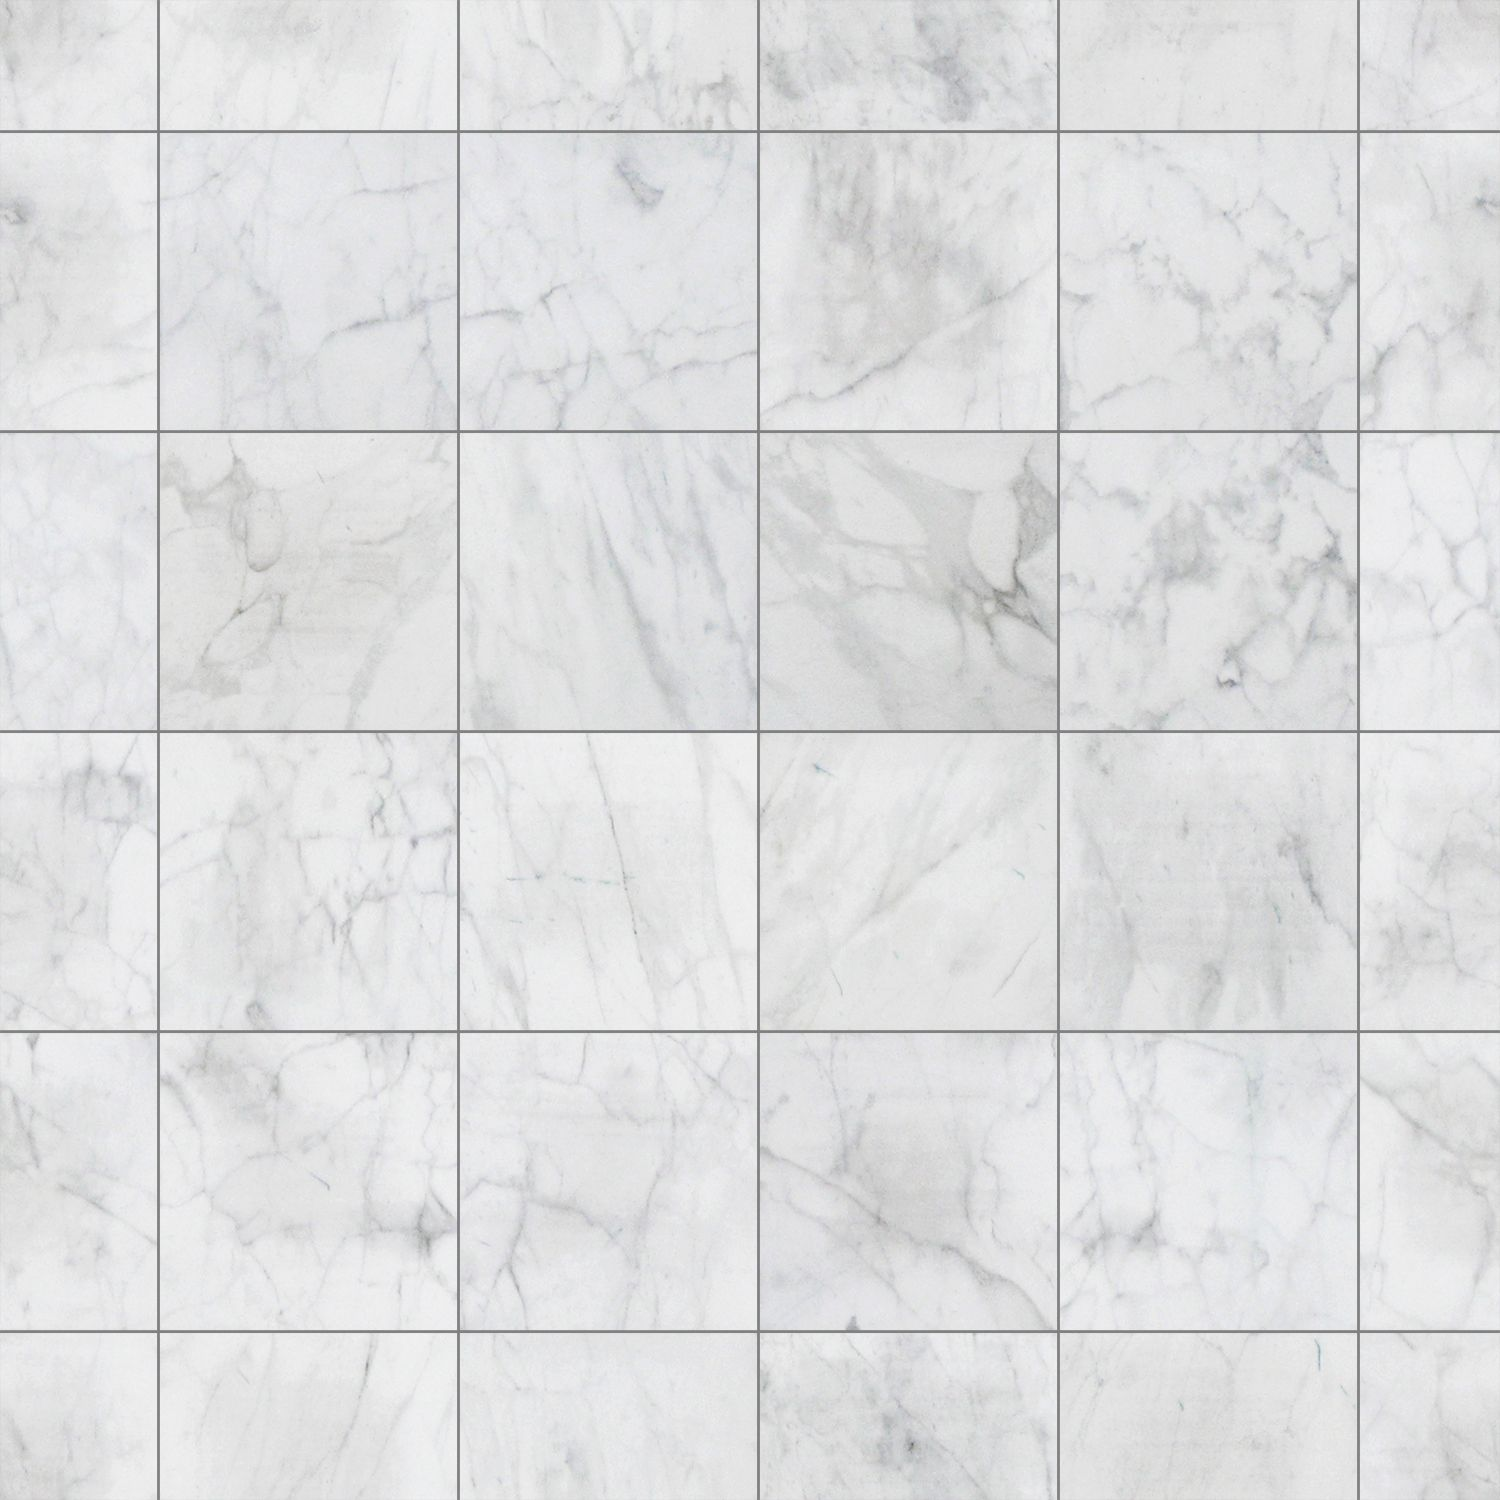 Bianco Rhino further Cirrus besides 16083276 in addition Synchrony Bank together with 531213718530115317. on white marble bathroom tile